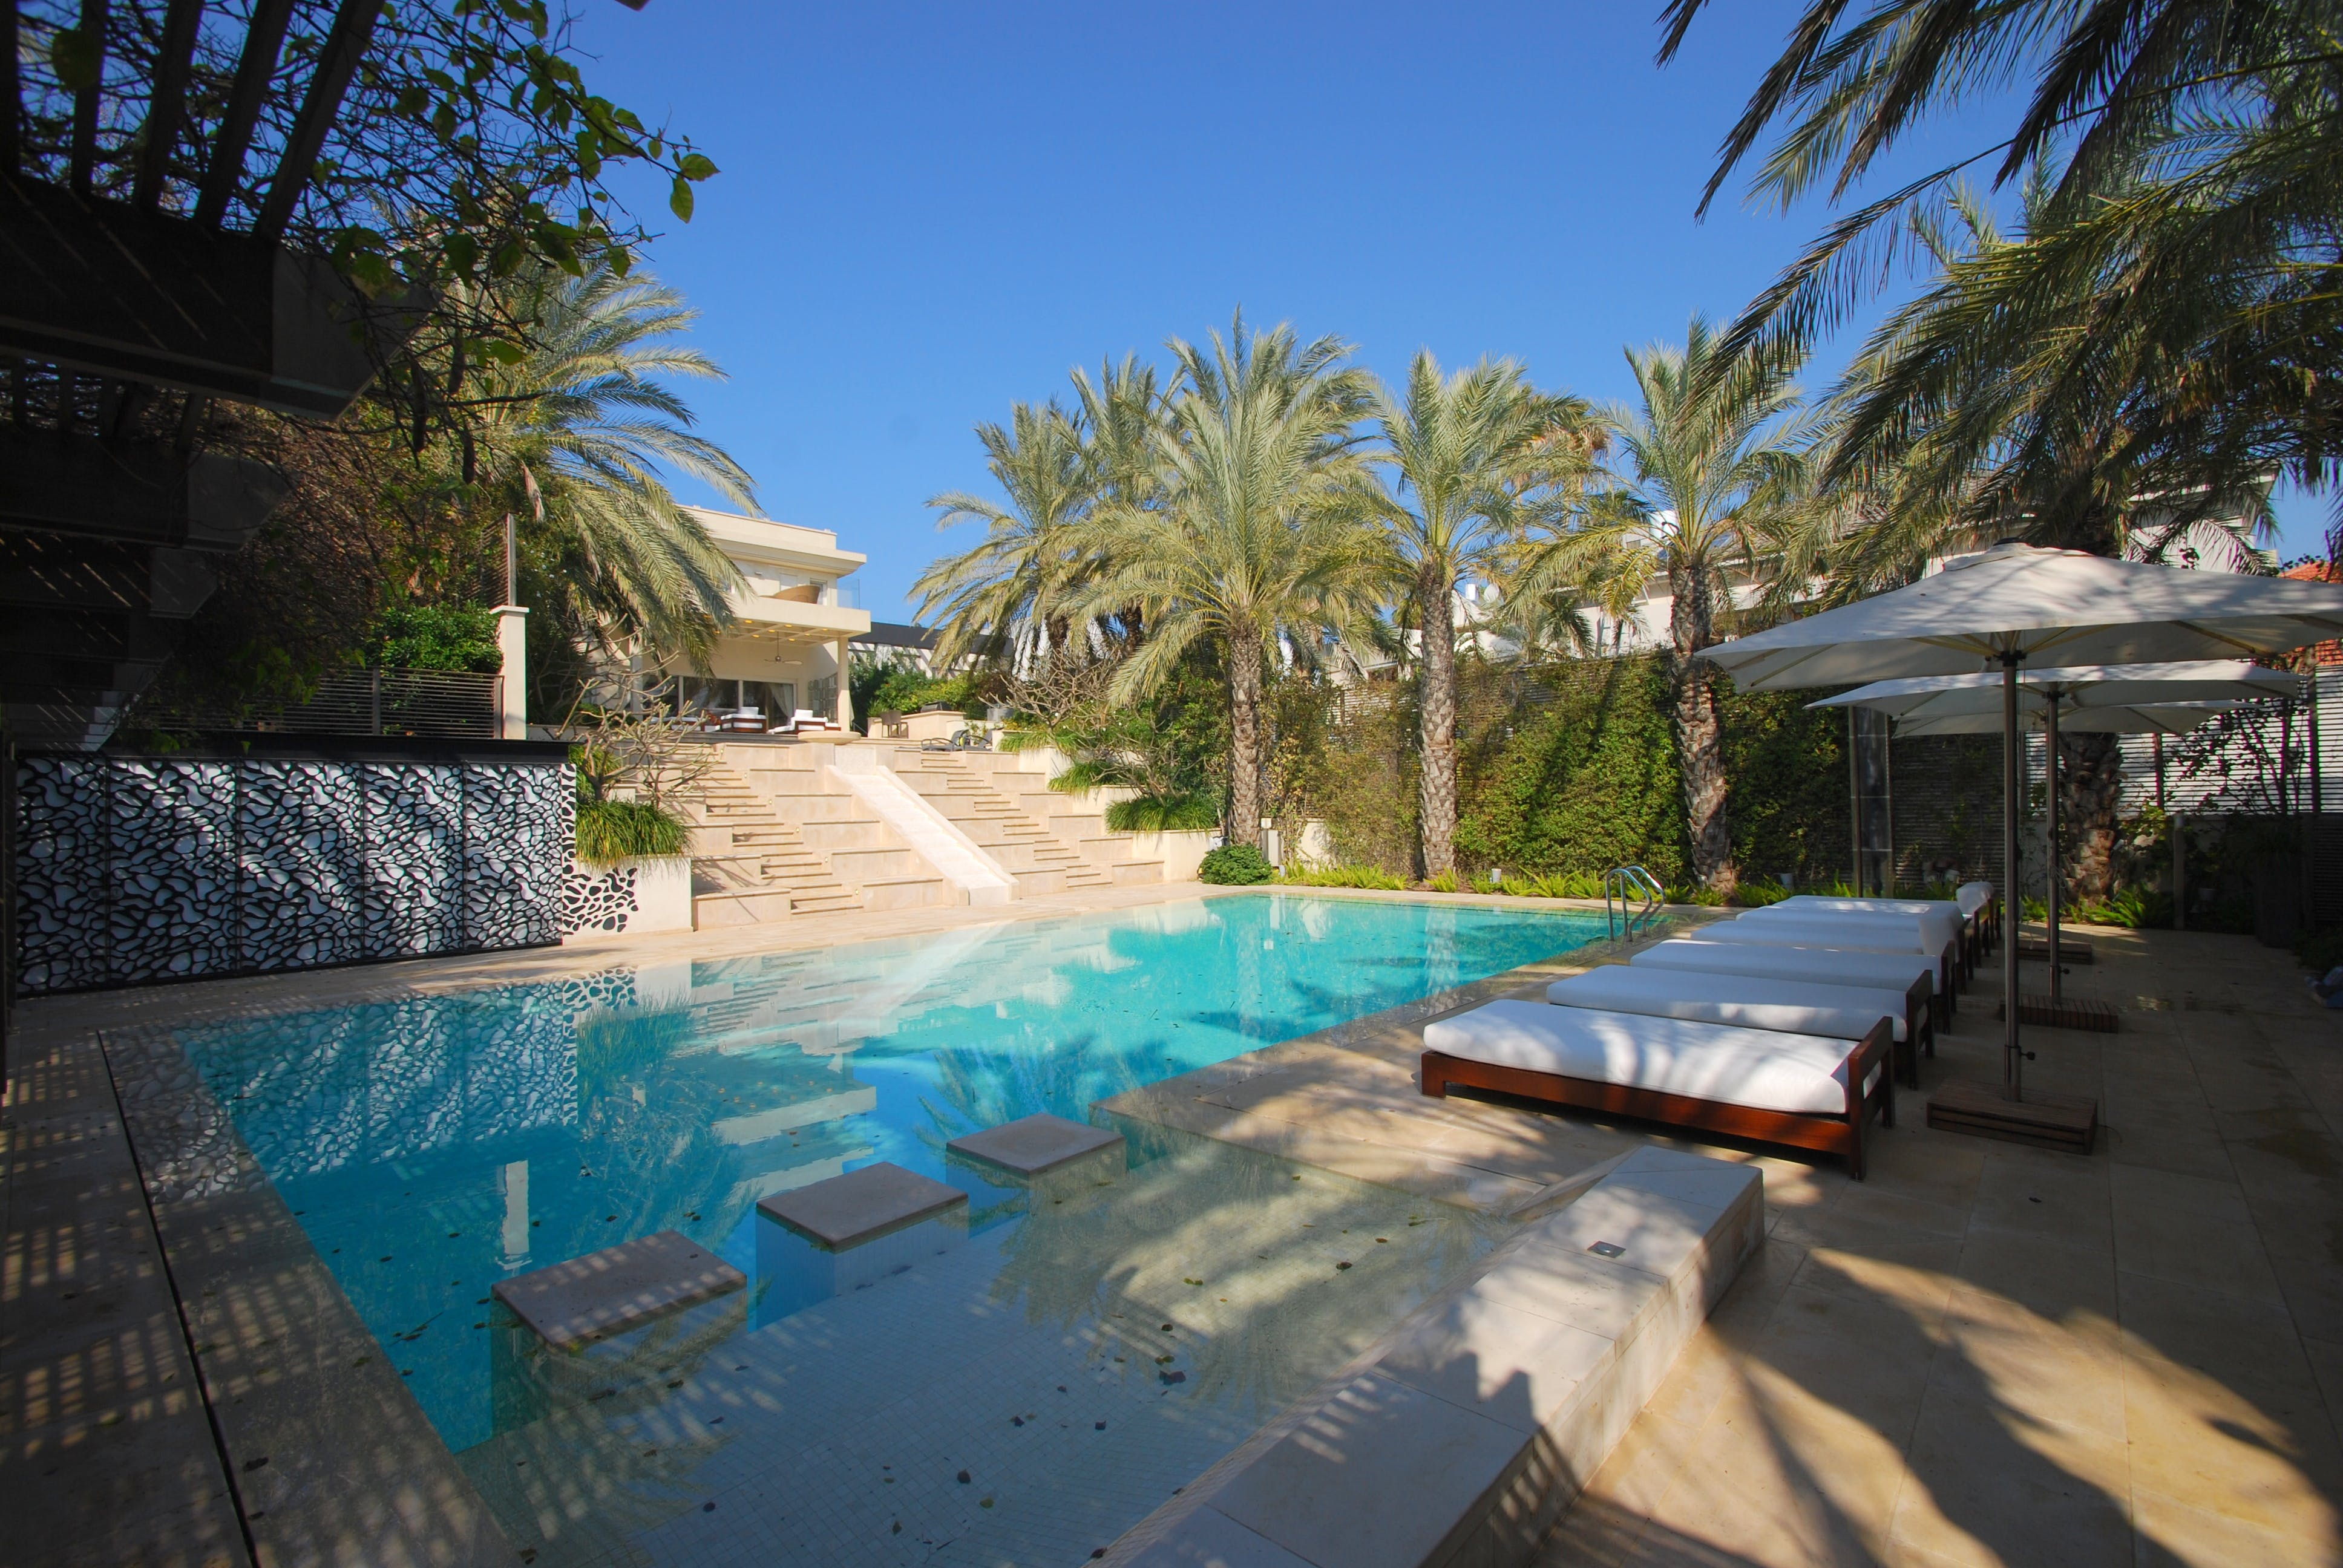 Walking distance to Herzliya beach -  - New York City Townhouse Real Estate